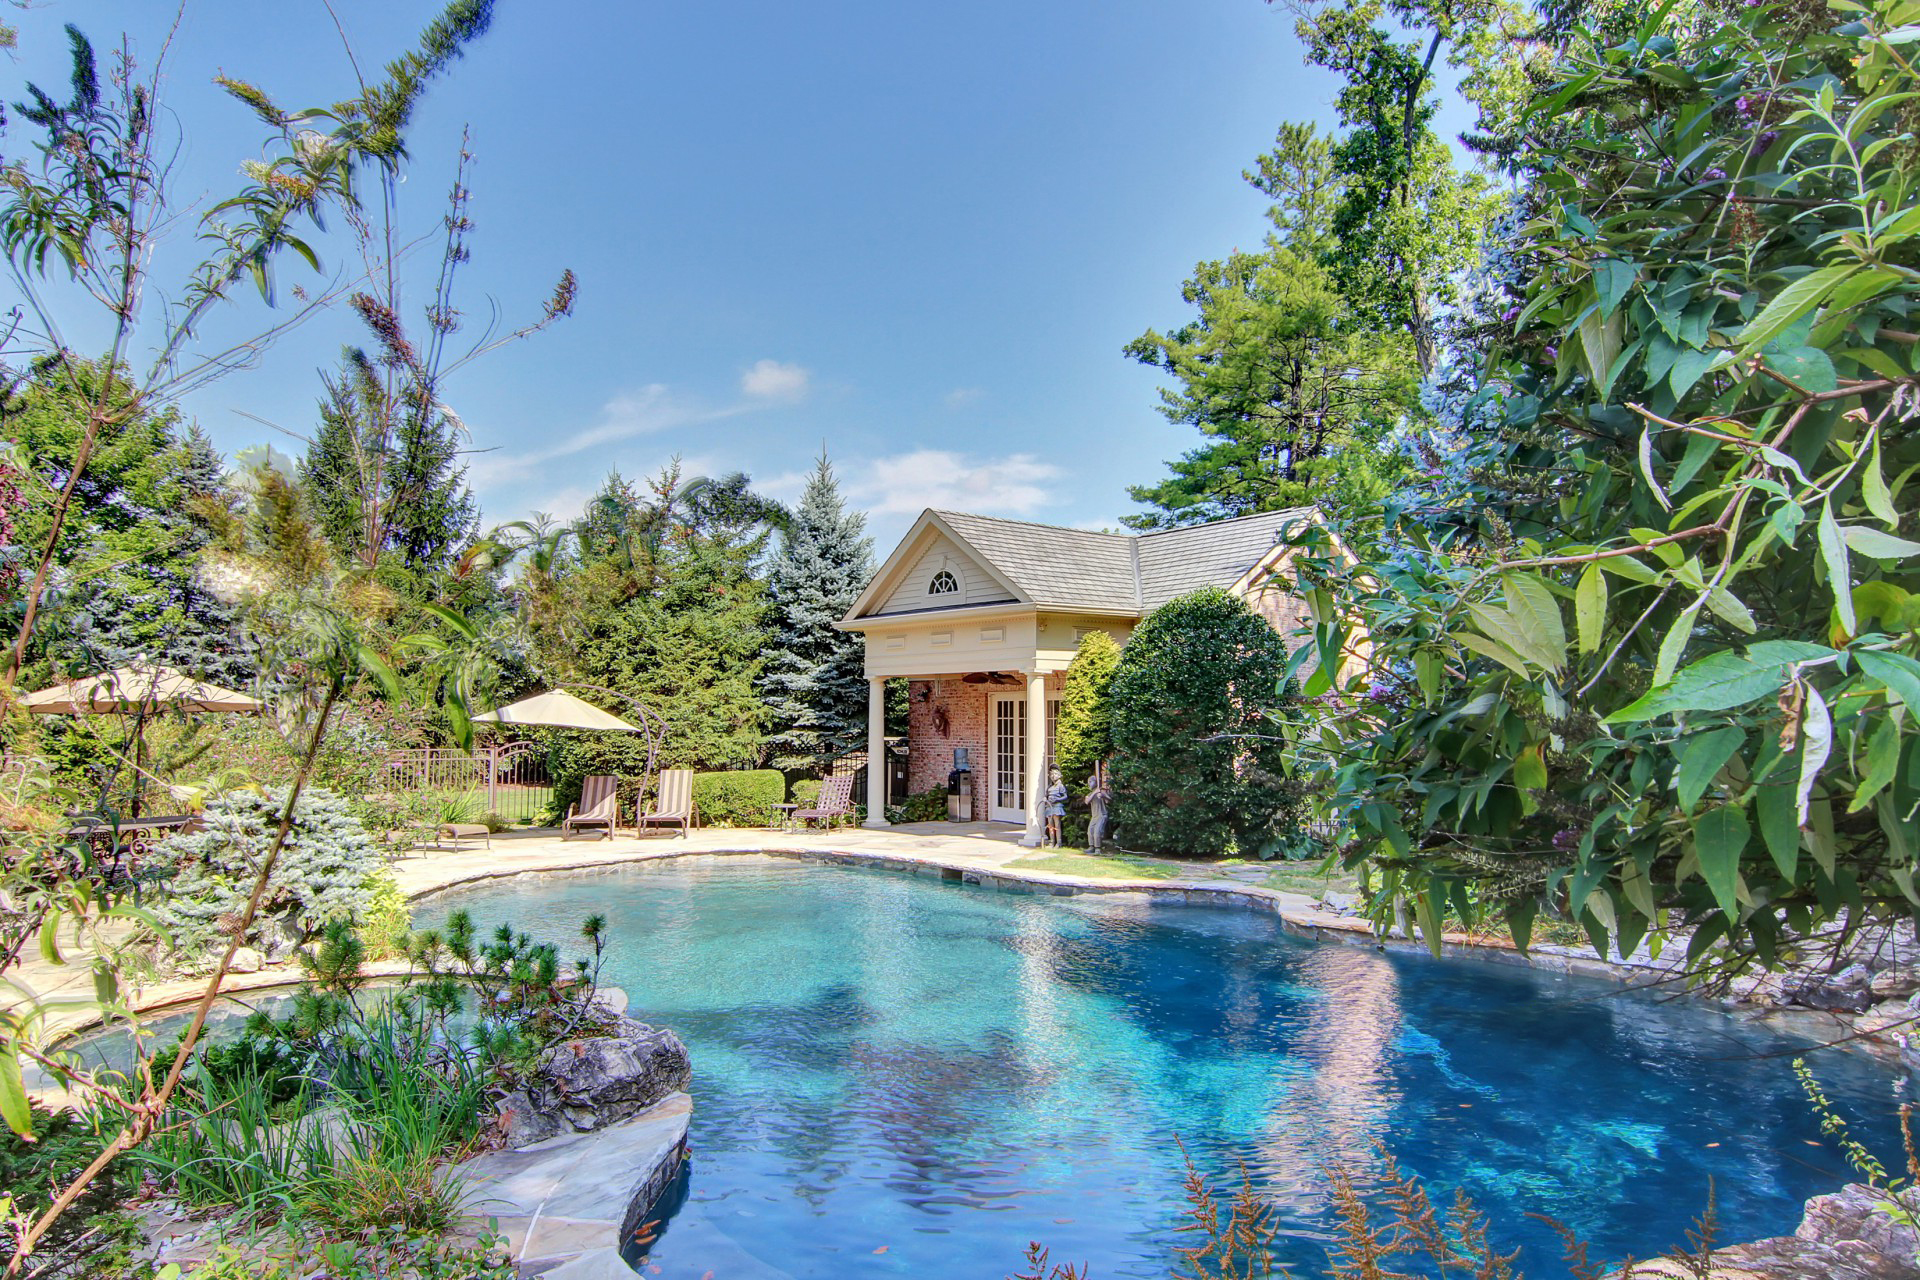 35 Tall Pine Lane Pool and Pool House